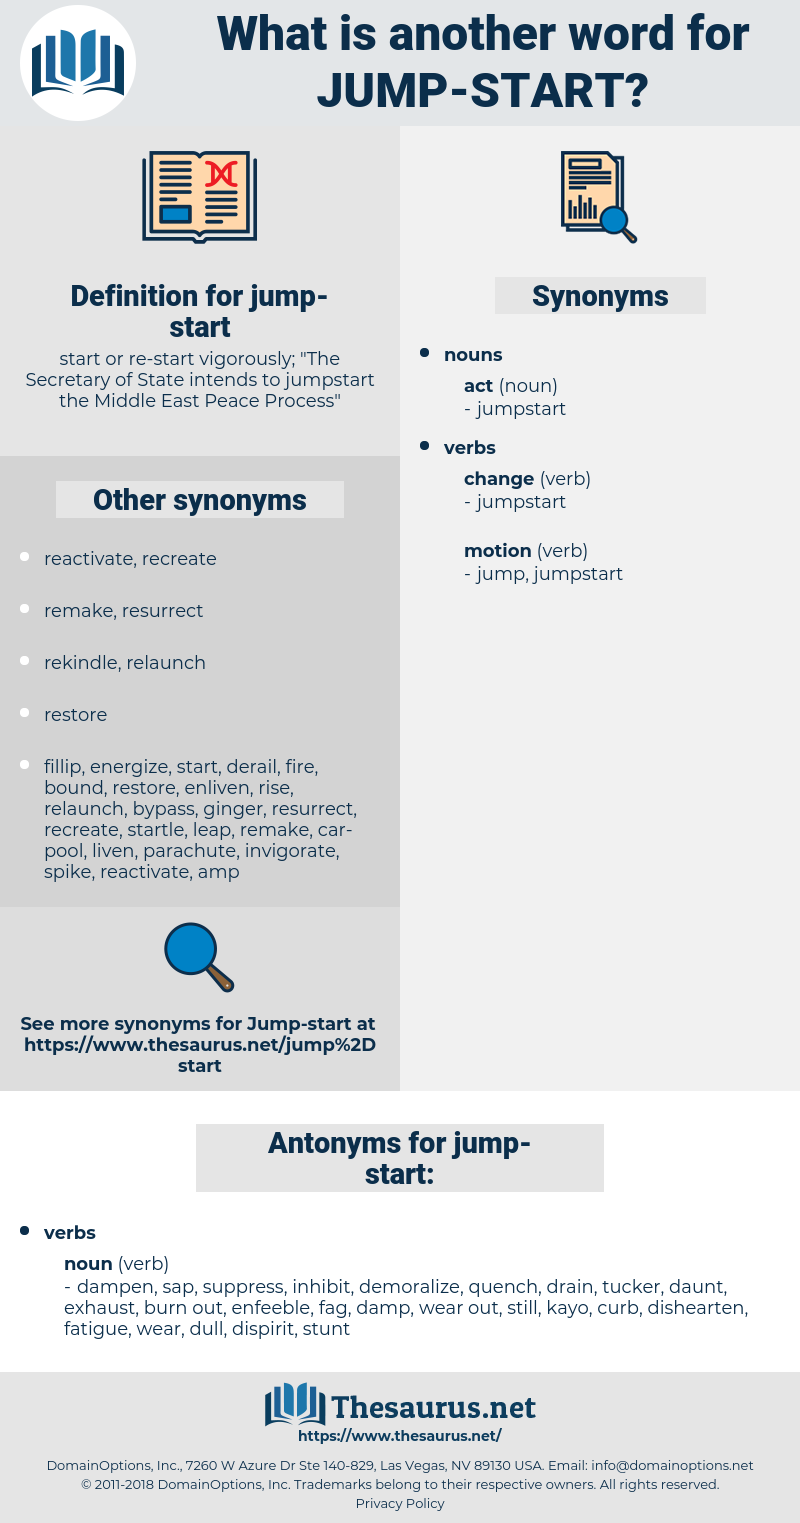 jump-start, synonym jump-start, another word for jump-start, words like jump-start, thesaurus jump-start